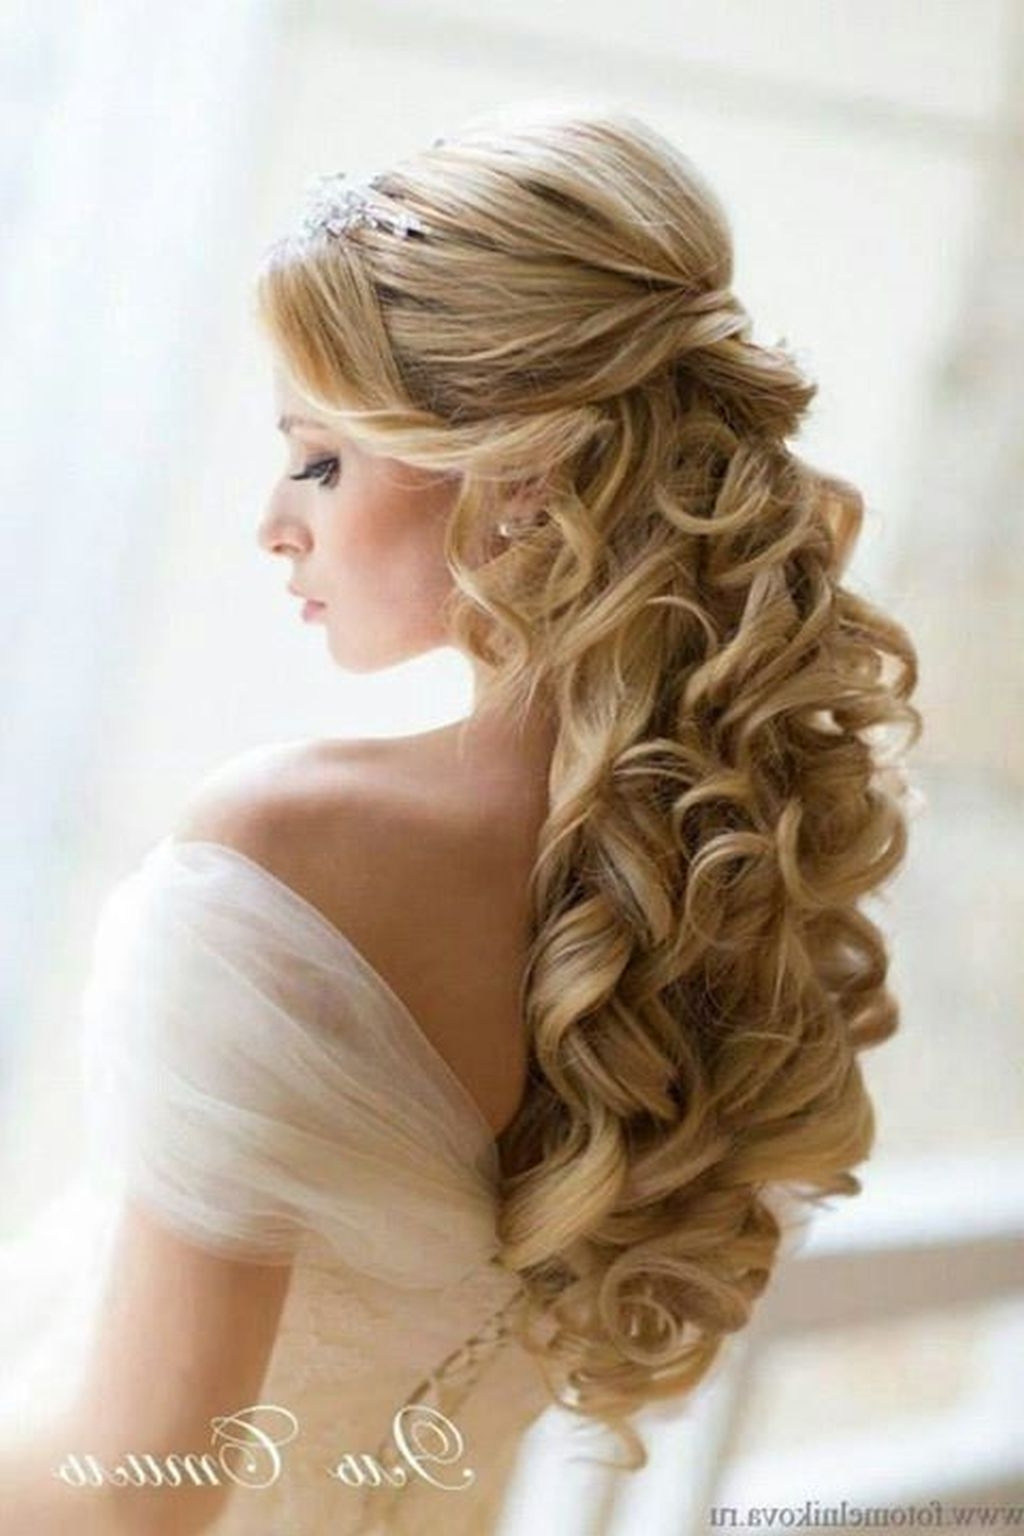 Bridal Hairstyles – Google Search | Bridal Hairstyles | Pinterest Intended For Bridal Updos For Curly Hair (View 14 of 15)